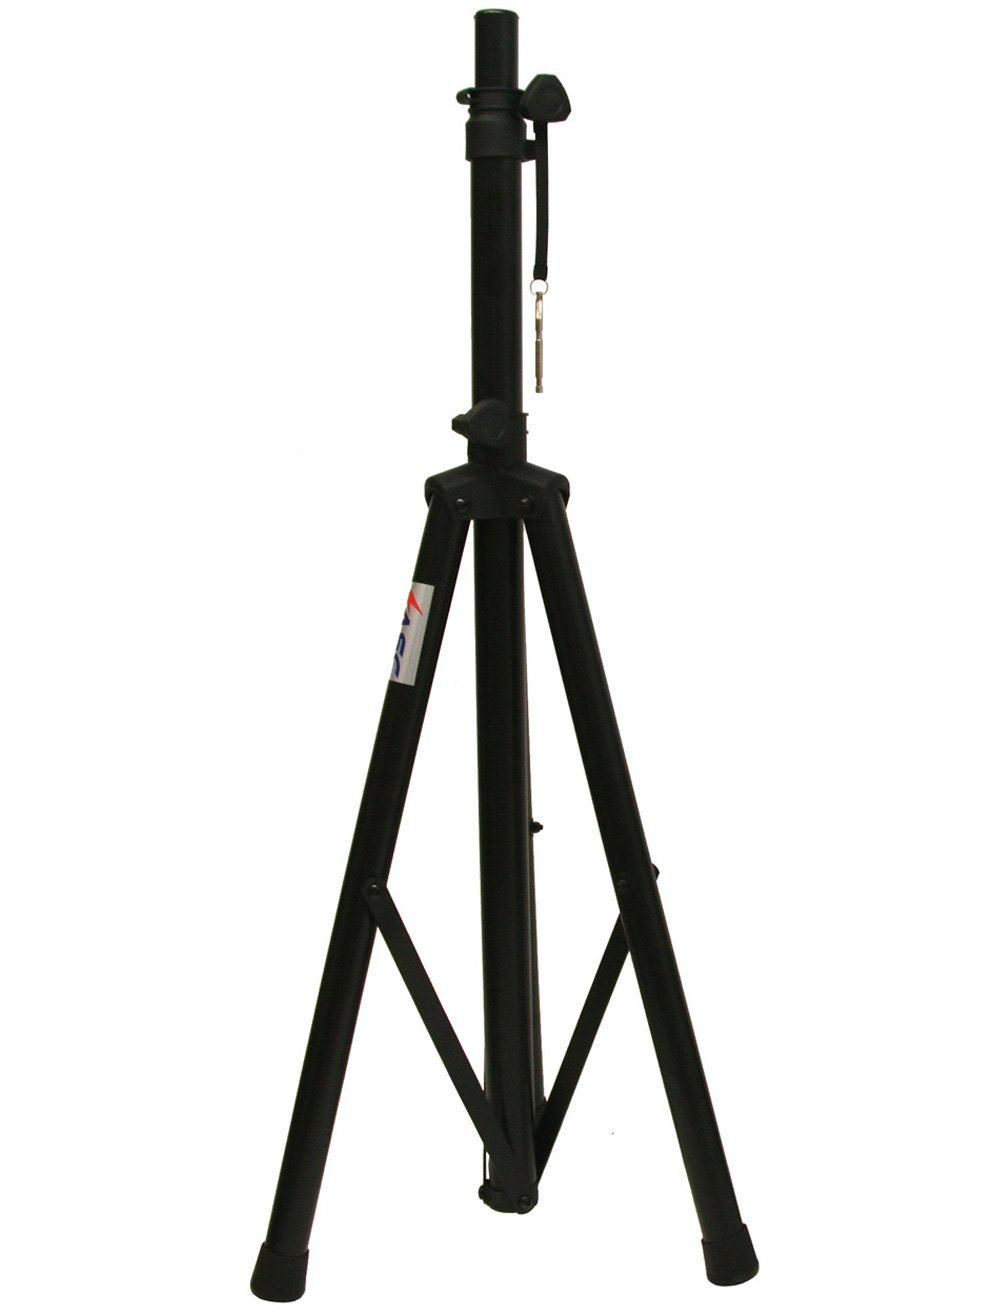 ASC Pro Audio Mobile DJ PA Speaker Stand Lighting 6 Foot Adjustable Height Tripod